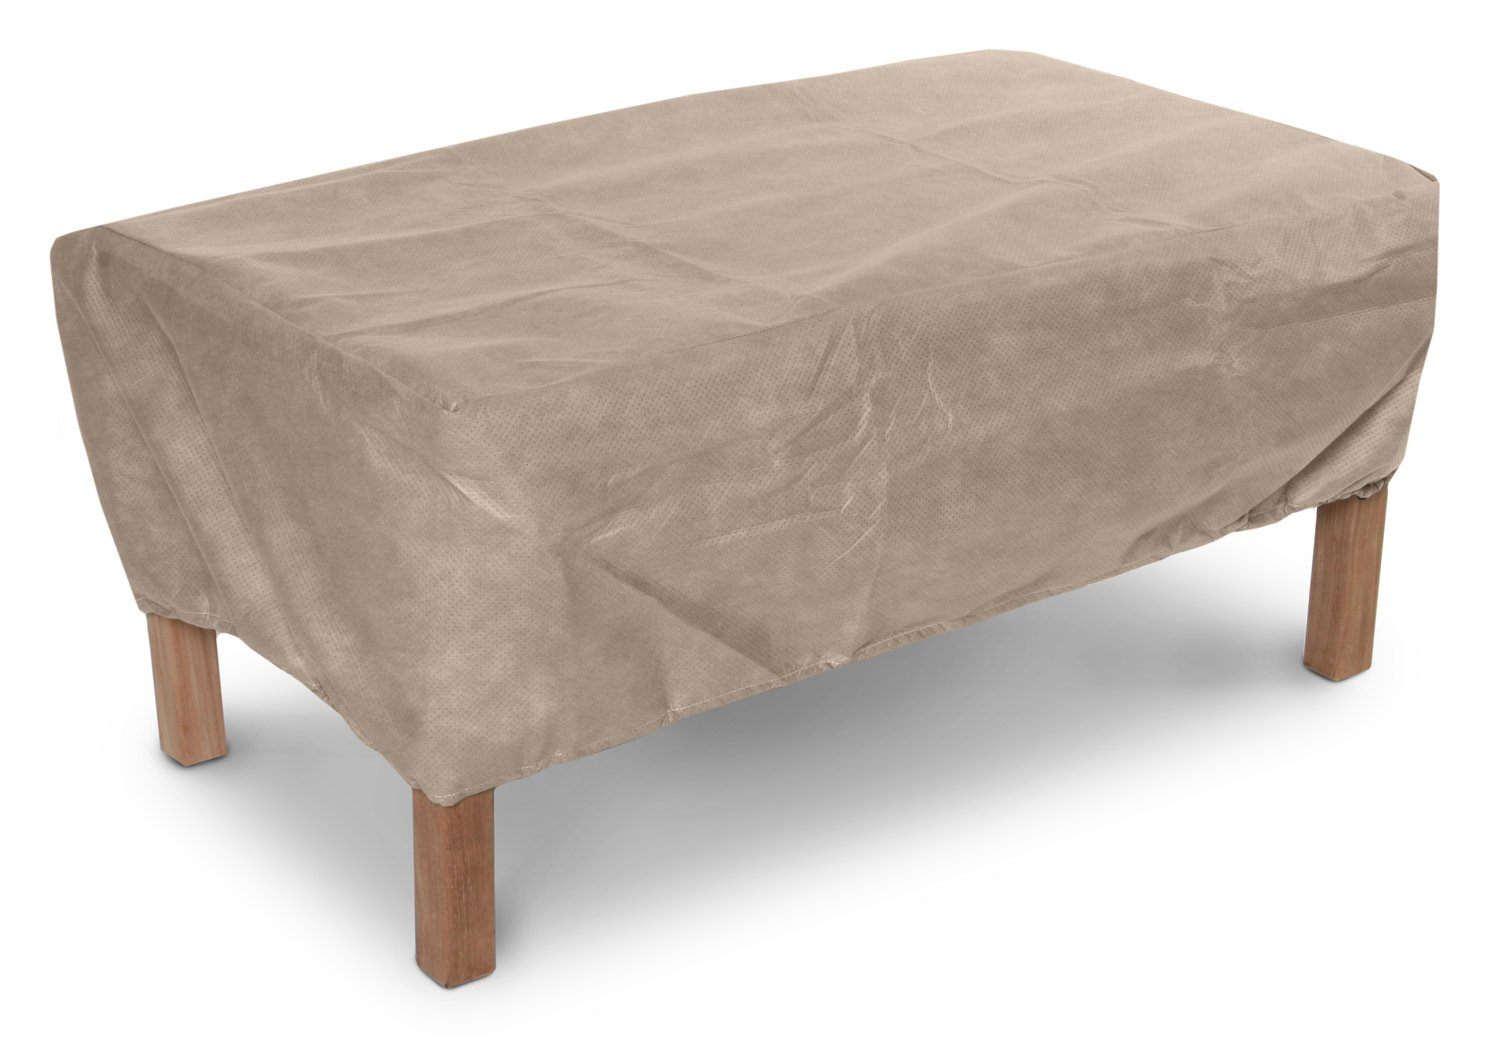 KoverRoos III 39327 42 by 30-Inch Ottoman/Small Table Cover, 42 by 30 by 15-Inch, Taupe